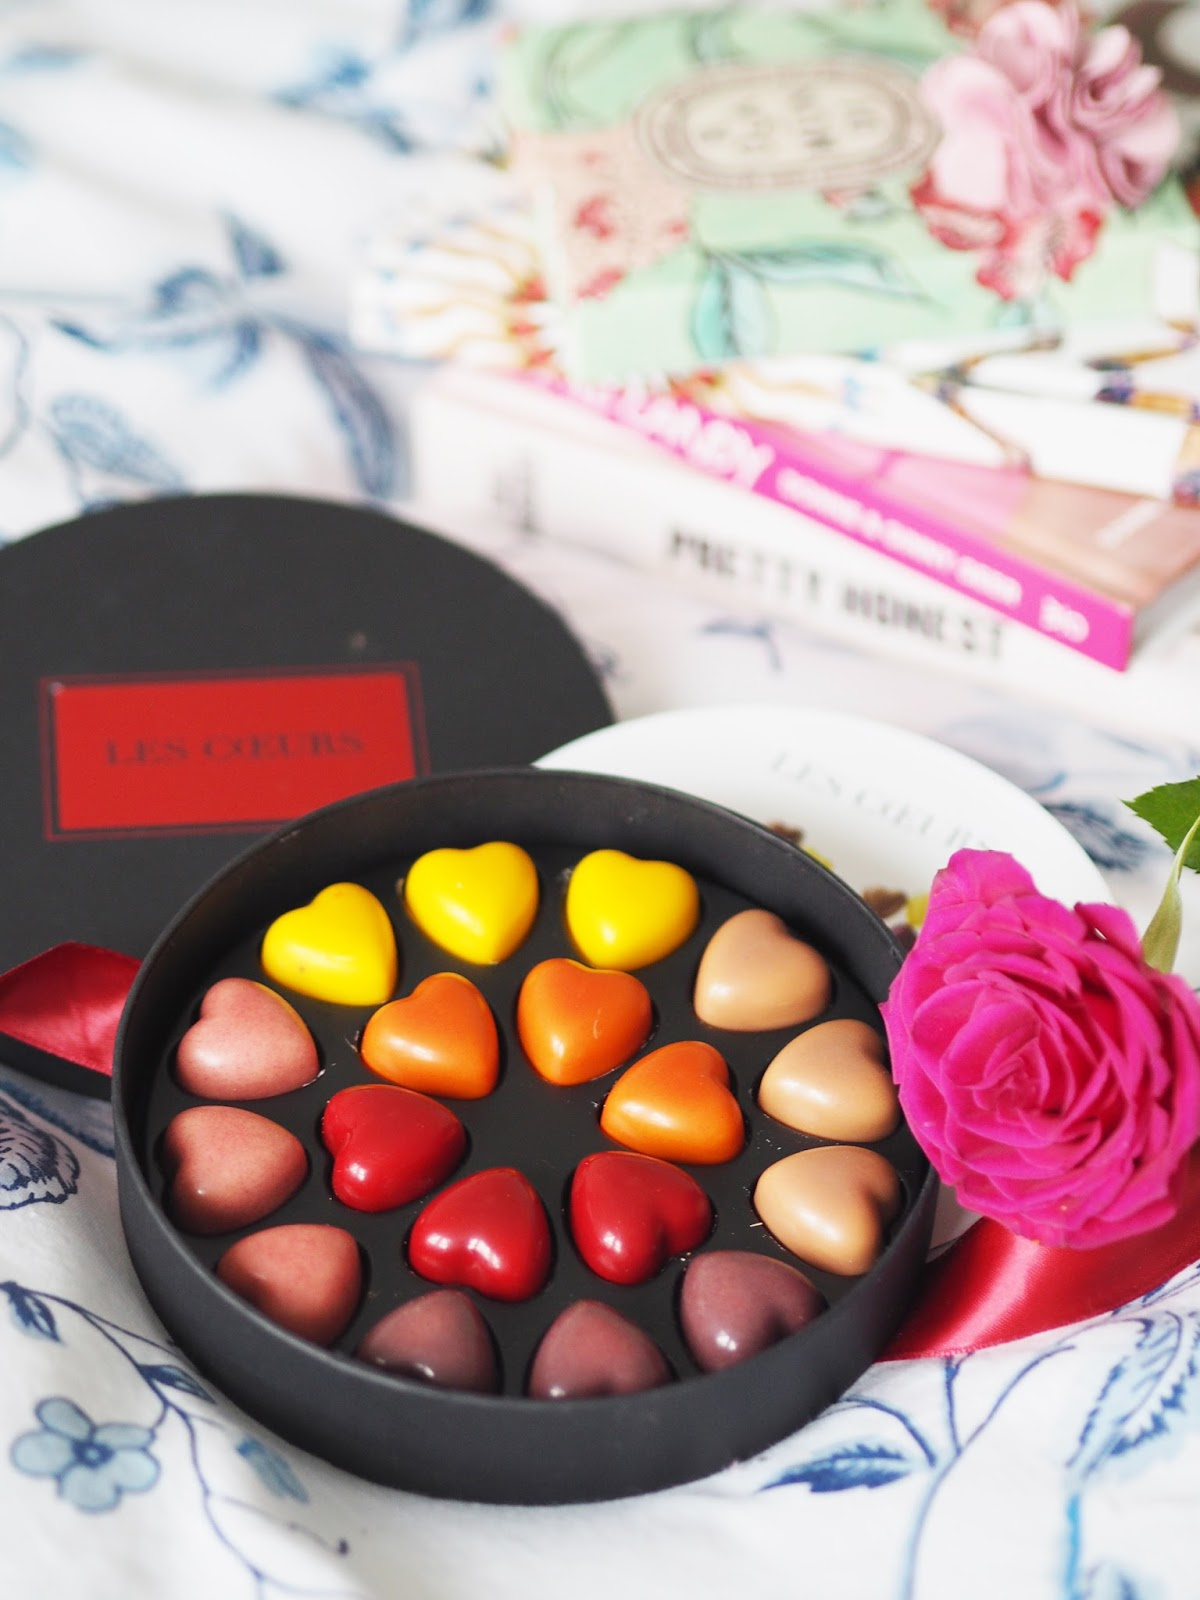 Pierre Marcolini hearts chocolates for Valentine's Day